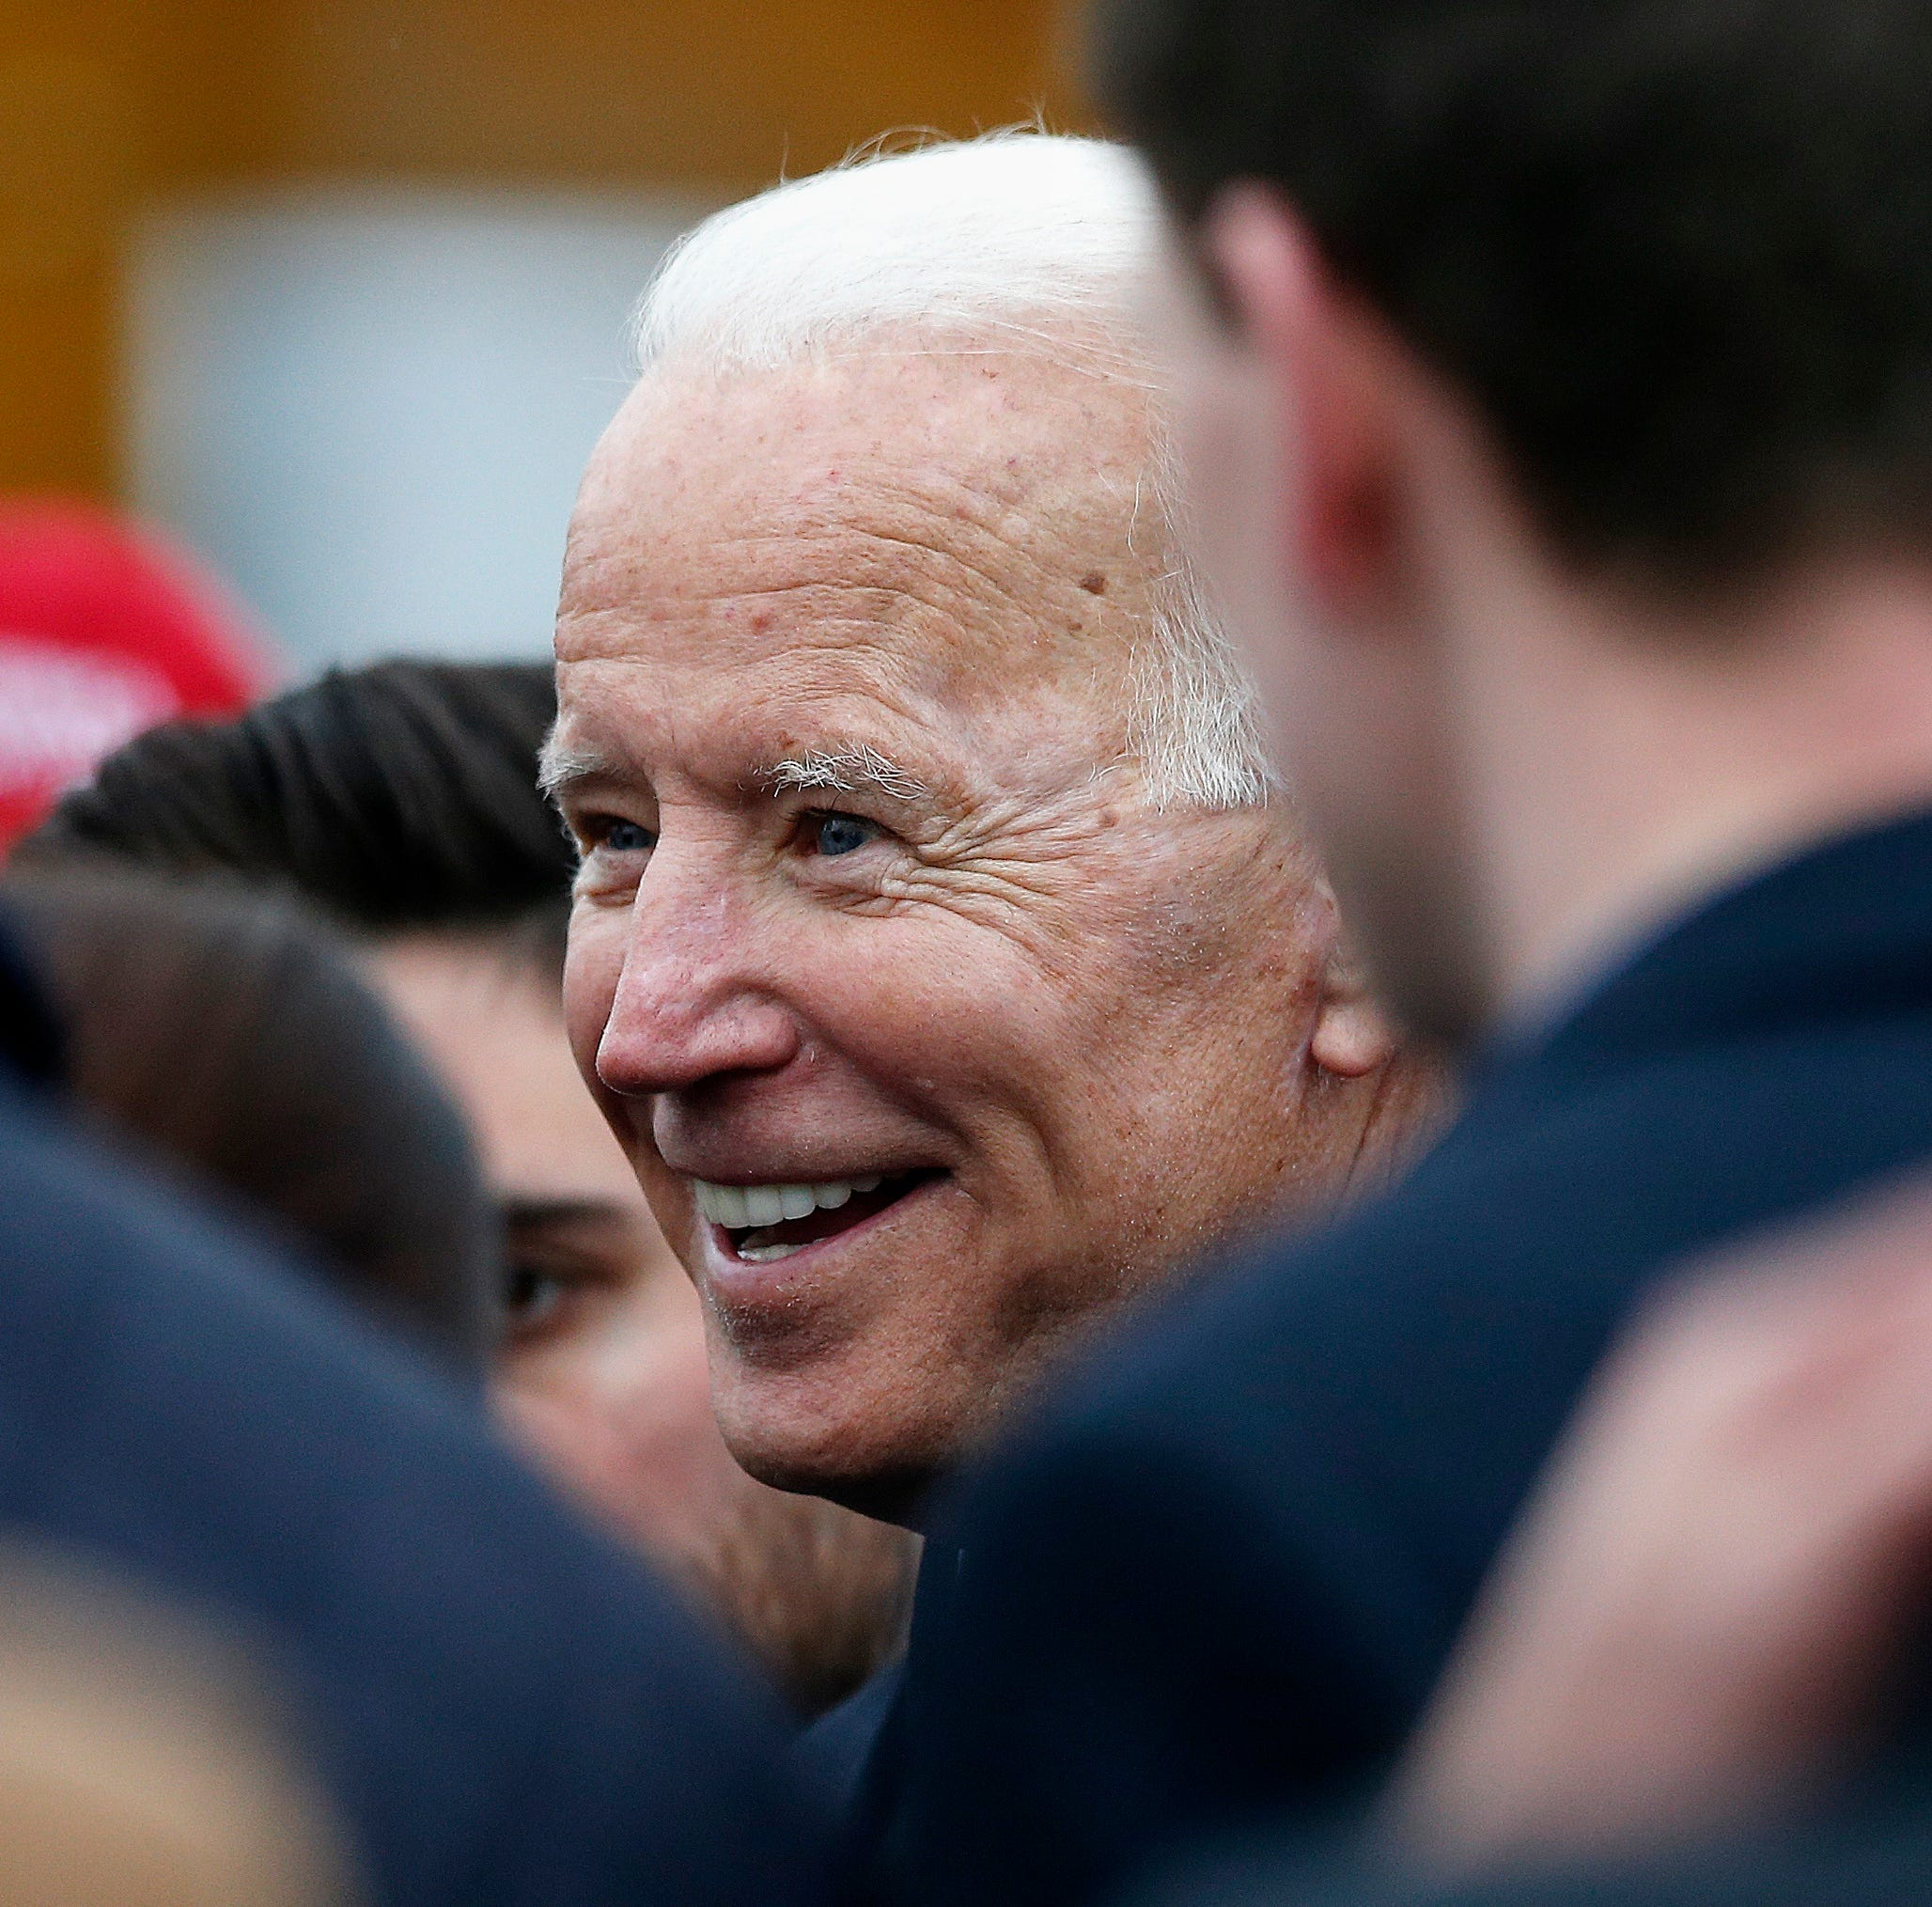 Source: Biden to announce 2020 bid on Thursday